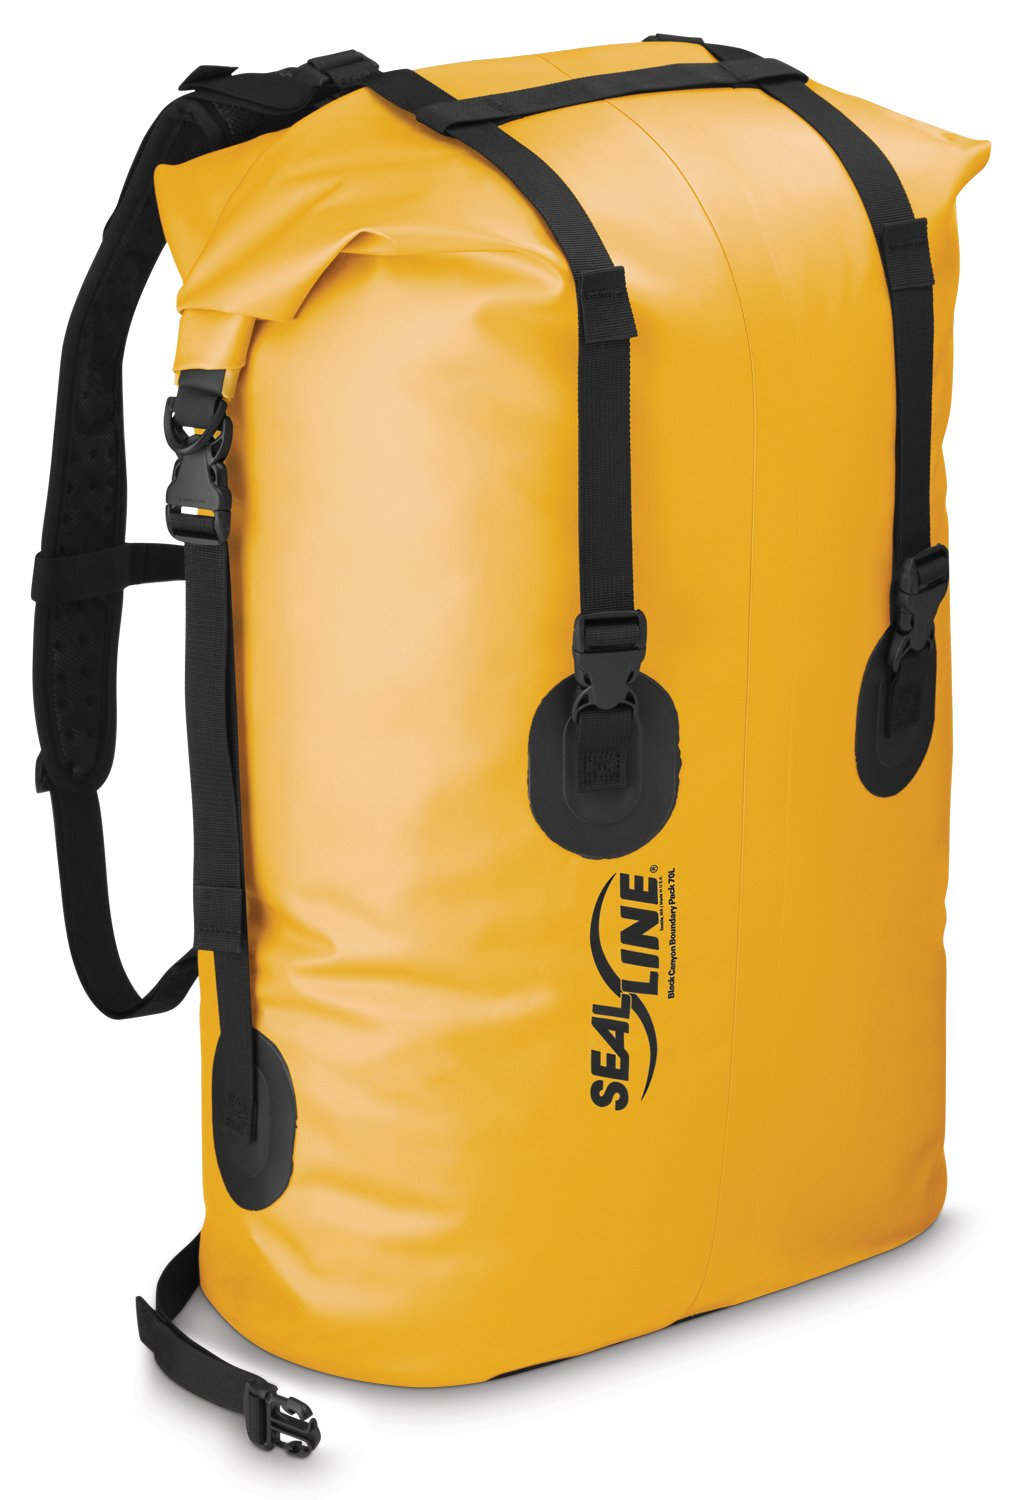 SealLine(シールライン) BLACK CANYON BOUNDARY PACK 35L イエロー 32288   B00452YMUS